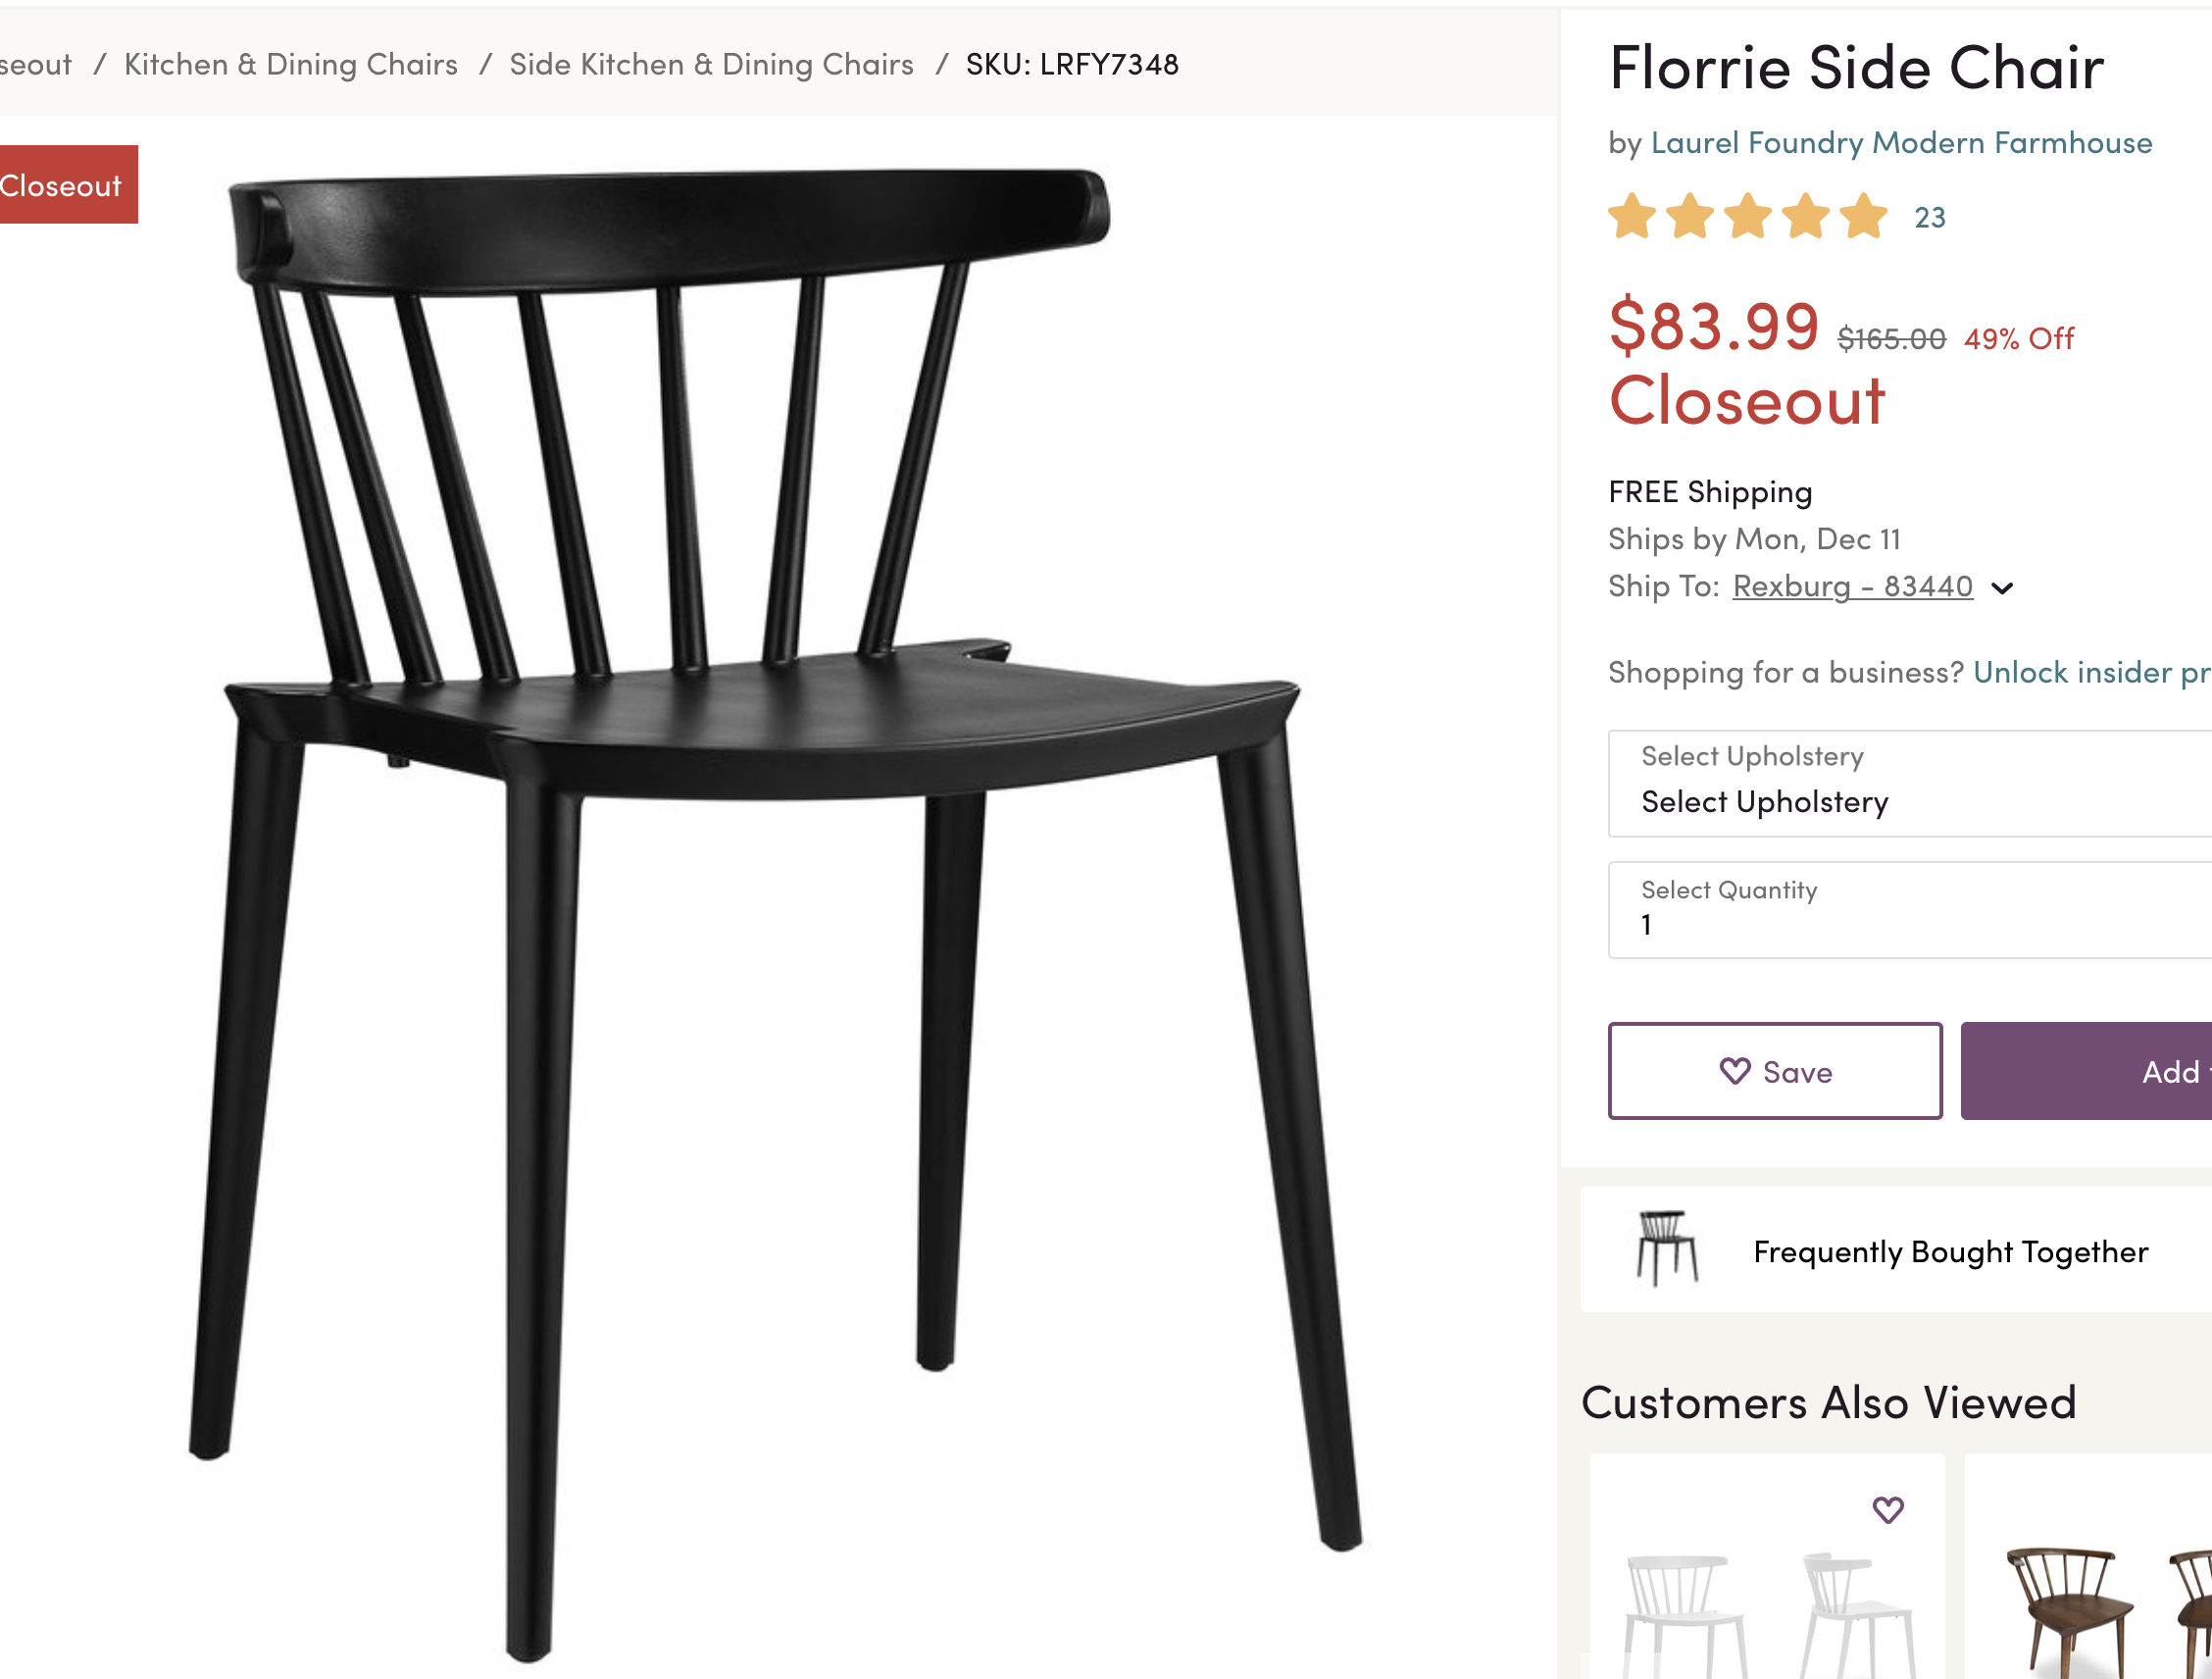 New Low Back Modern Spindle Chairs For The Dining Room Dining Chairs Modern Dining Chairs Chair